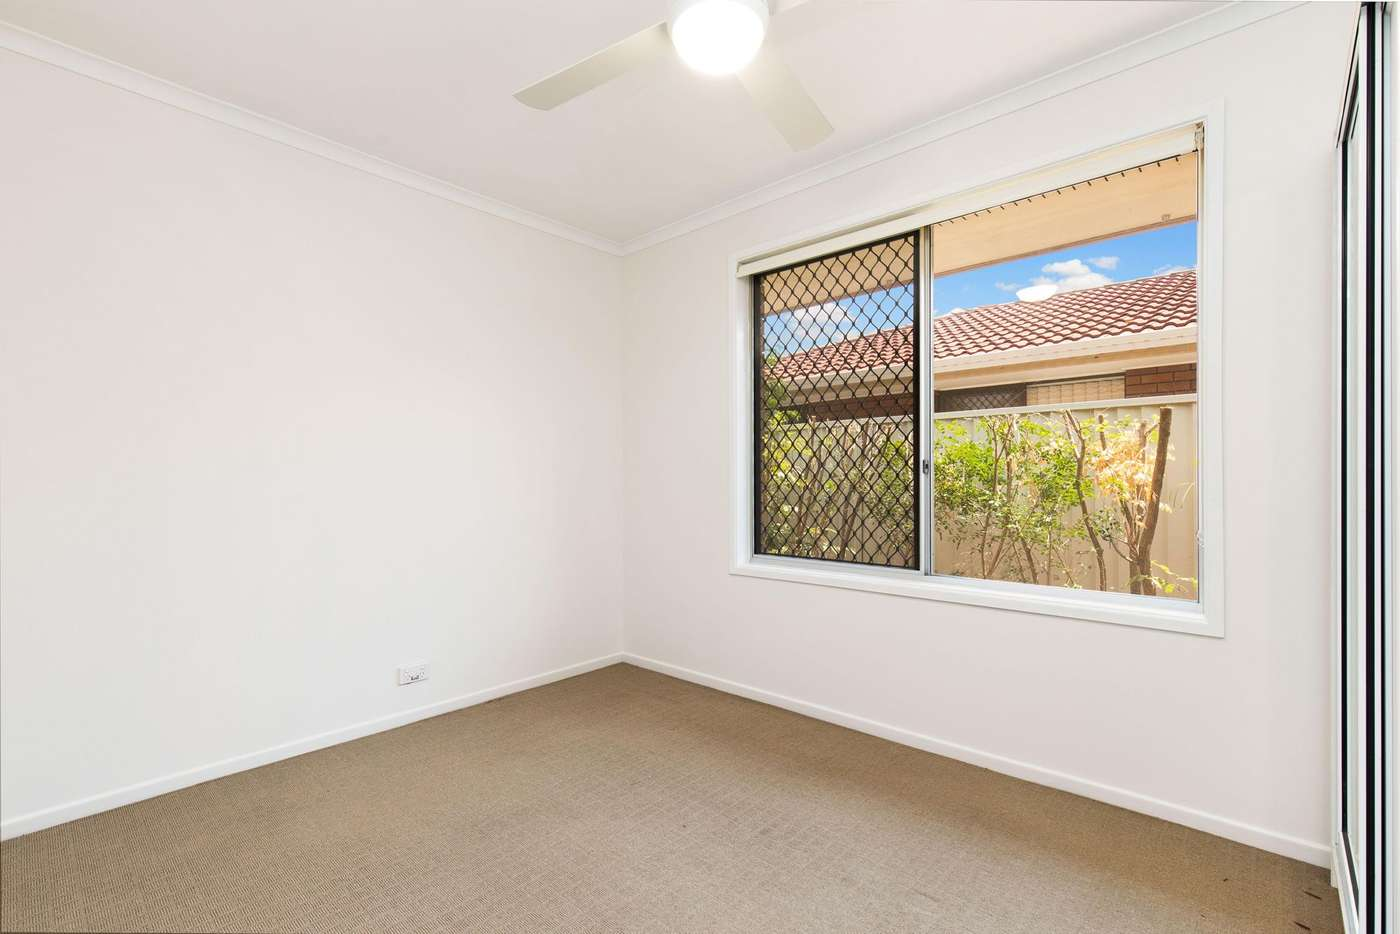 Sixth view of Homely house listing, 14 Thornburgh Street, Oxley QLD 4075